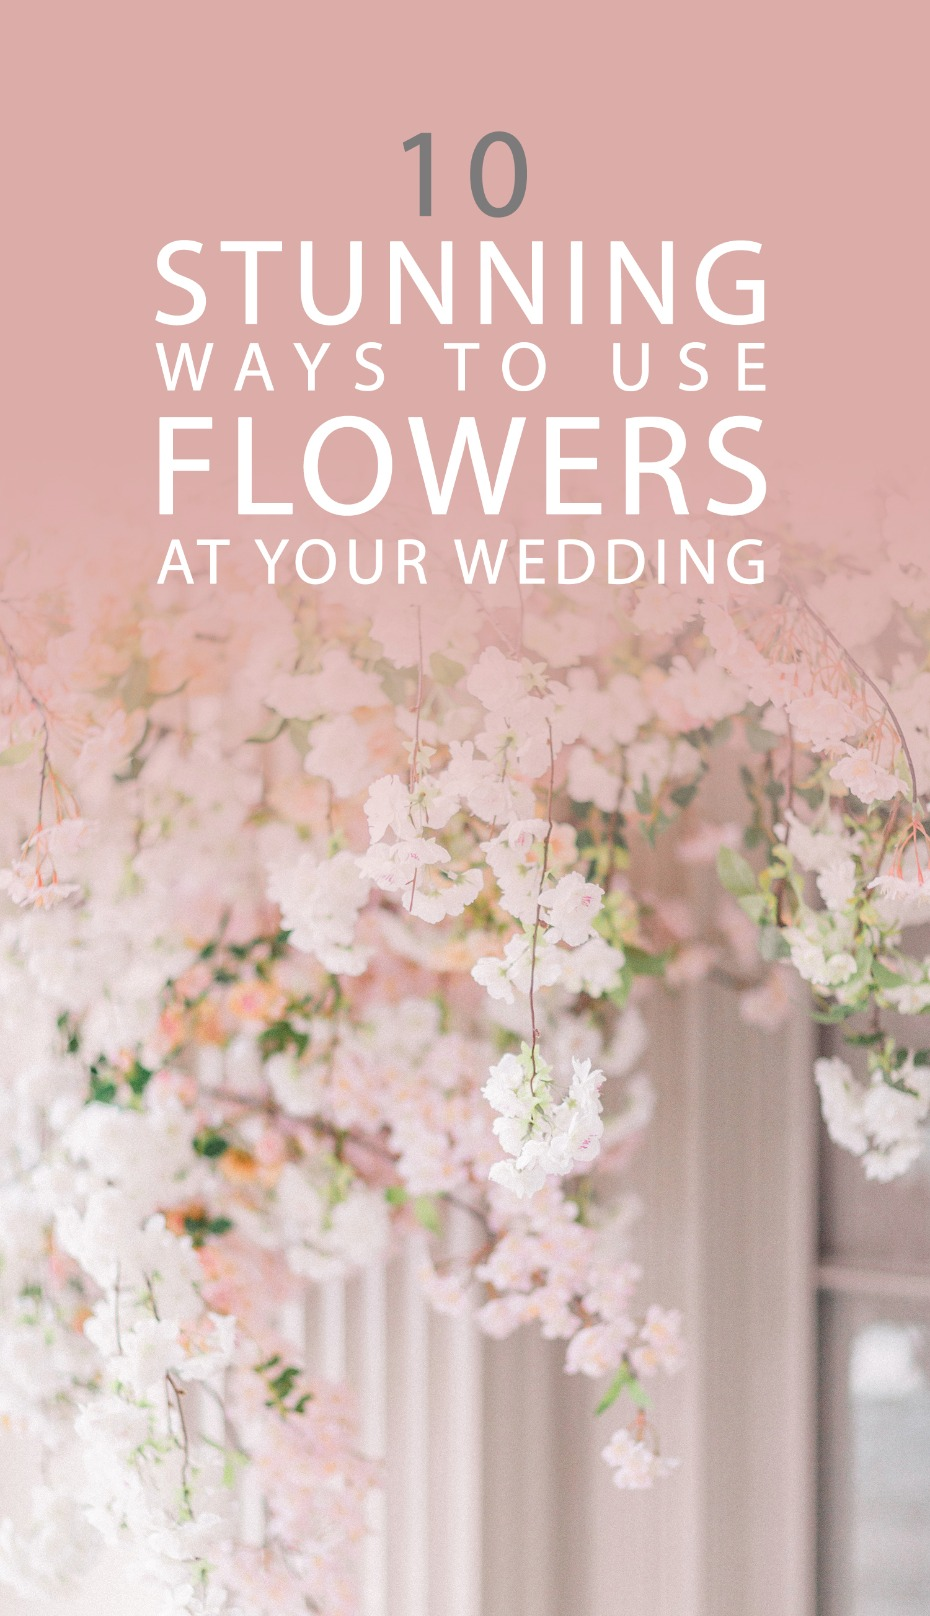 10 stunning ways to use flowers at your wedding